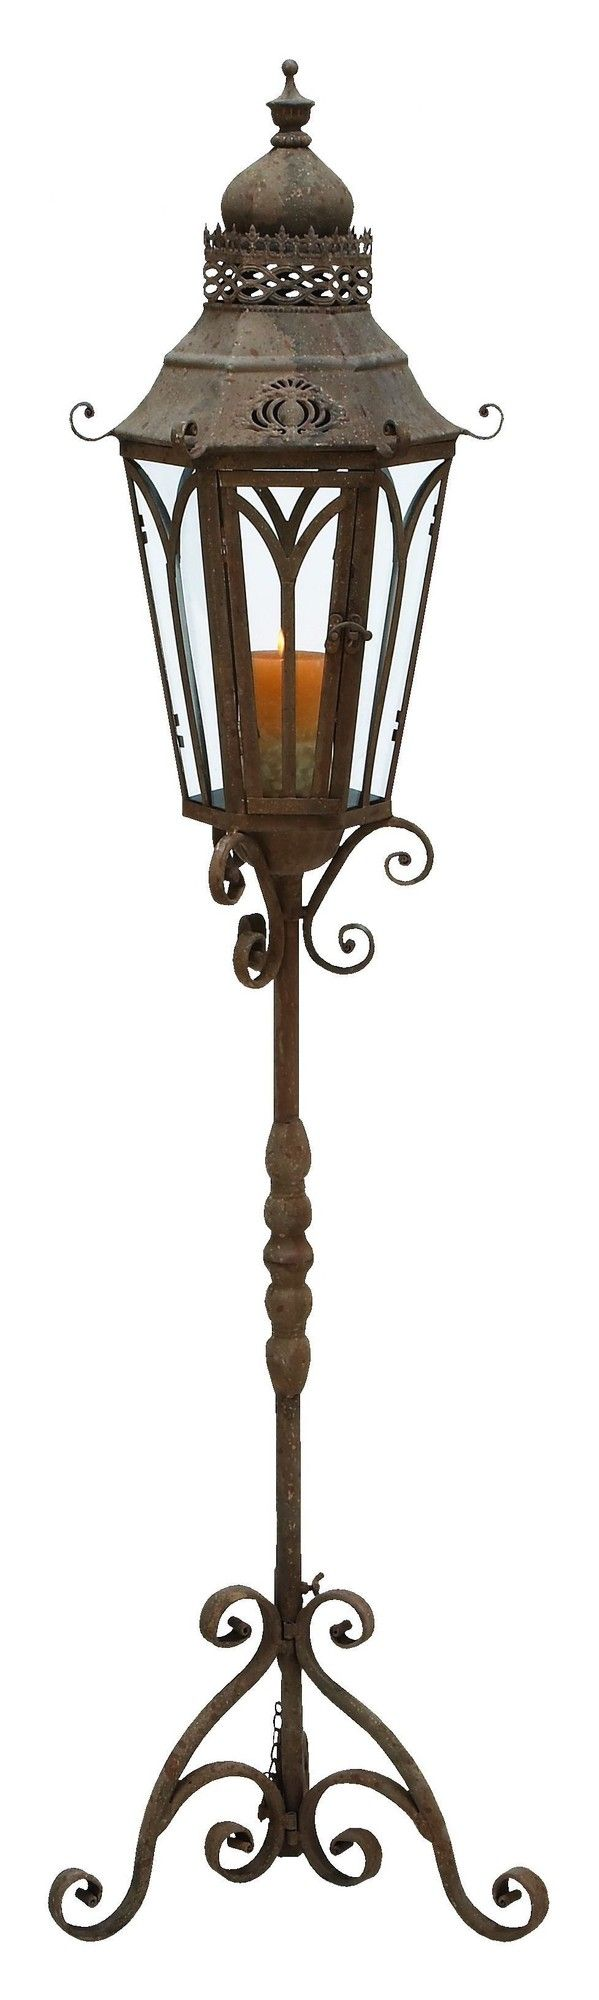 Outdoor floor lamp by evergreen - Aspire Outdoor Lantern With Stand Reviews Wayfair